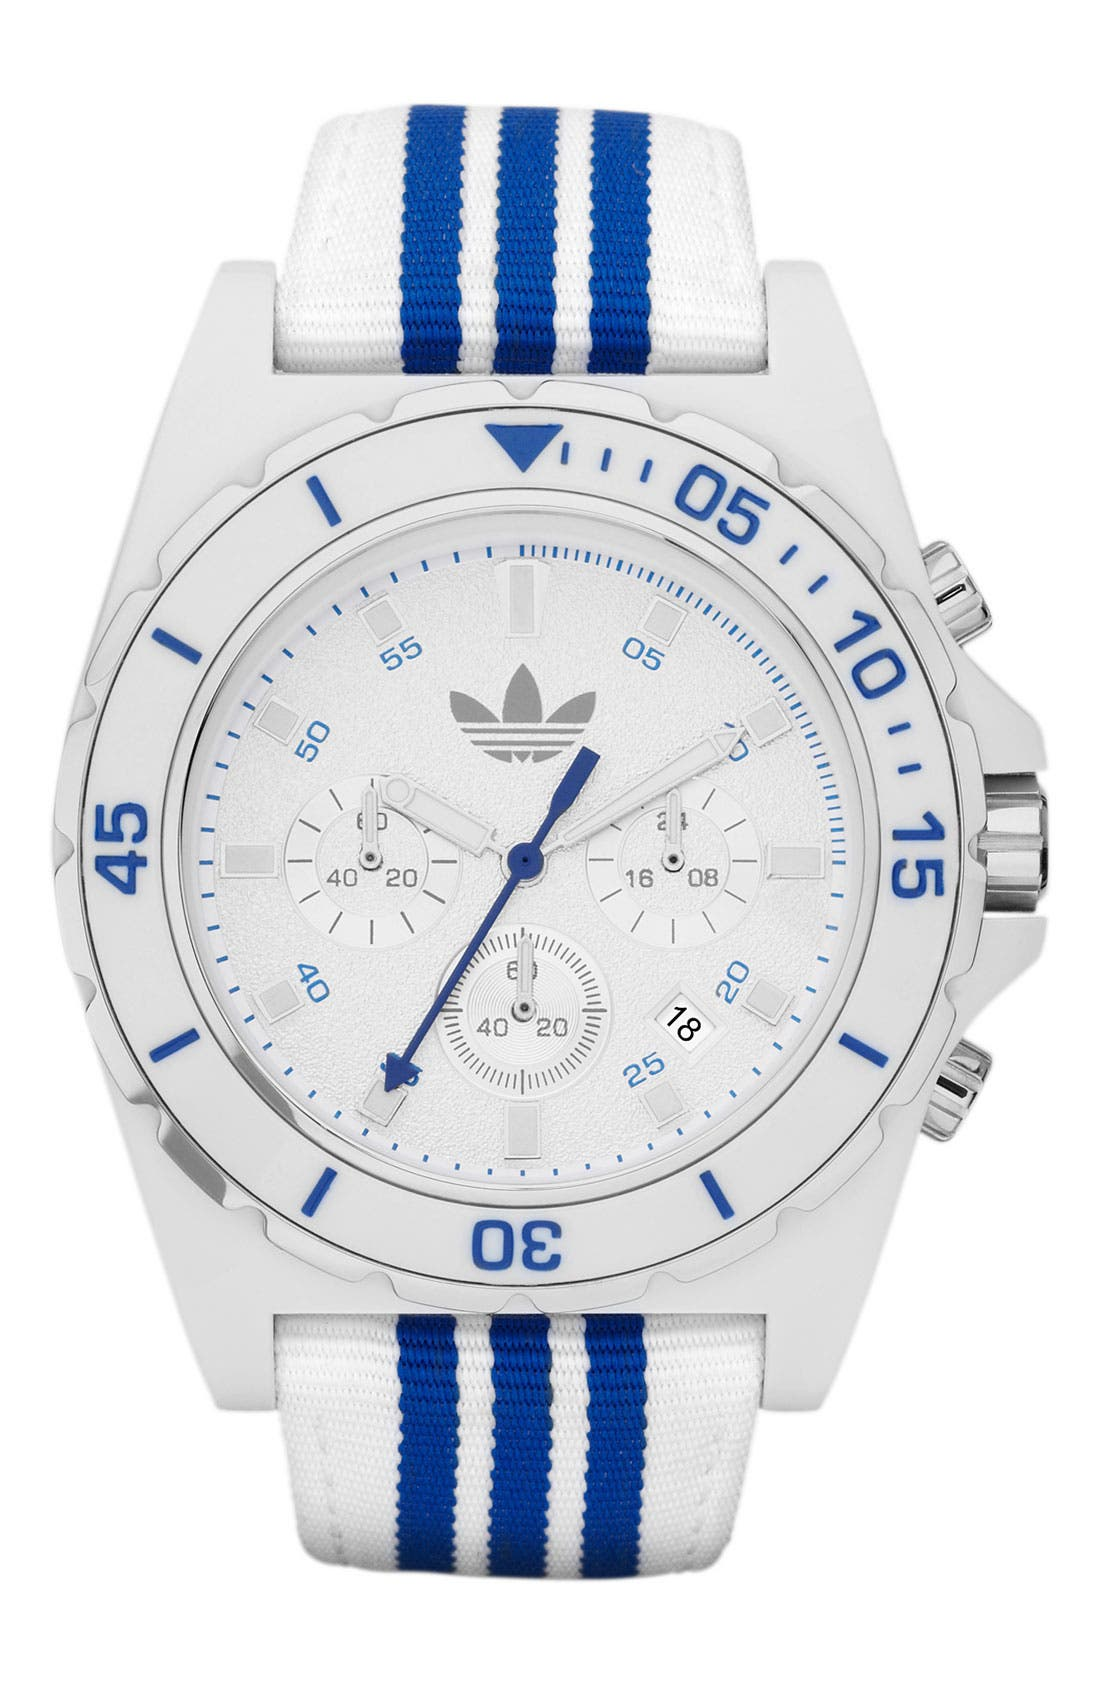 Main Image - adidas Originals 'Stockholm' Nylon Strap Watch, 44mm